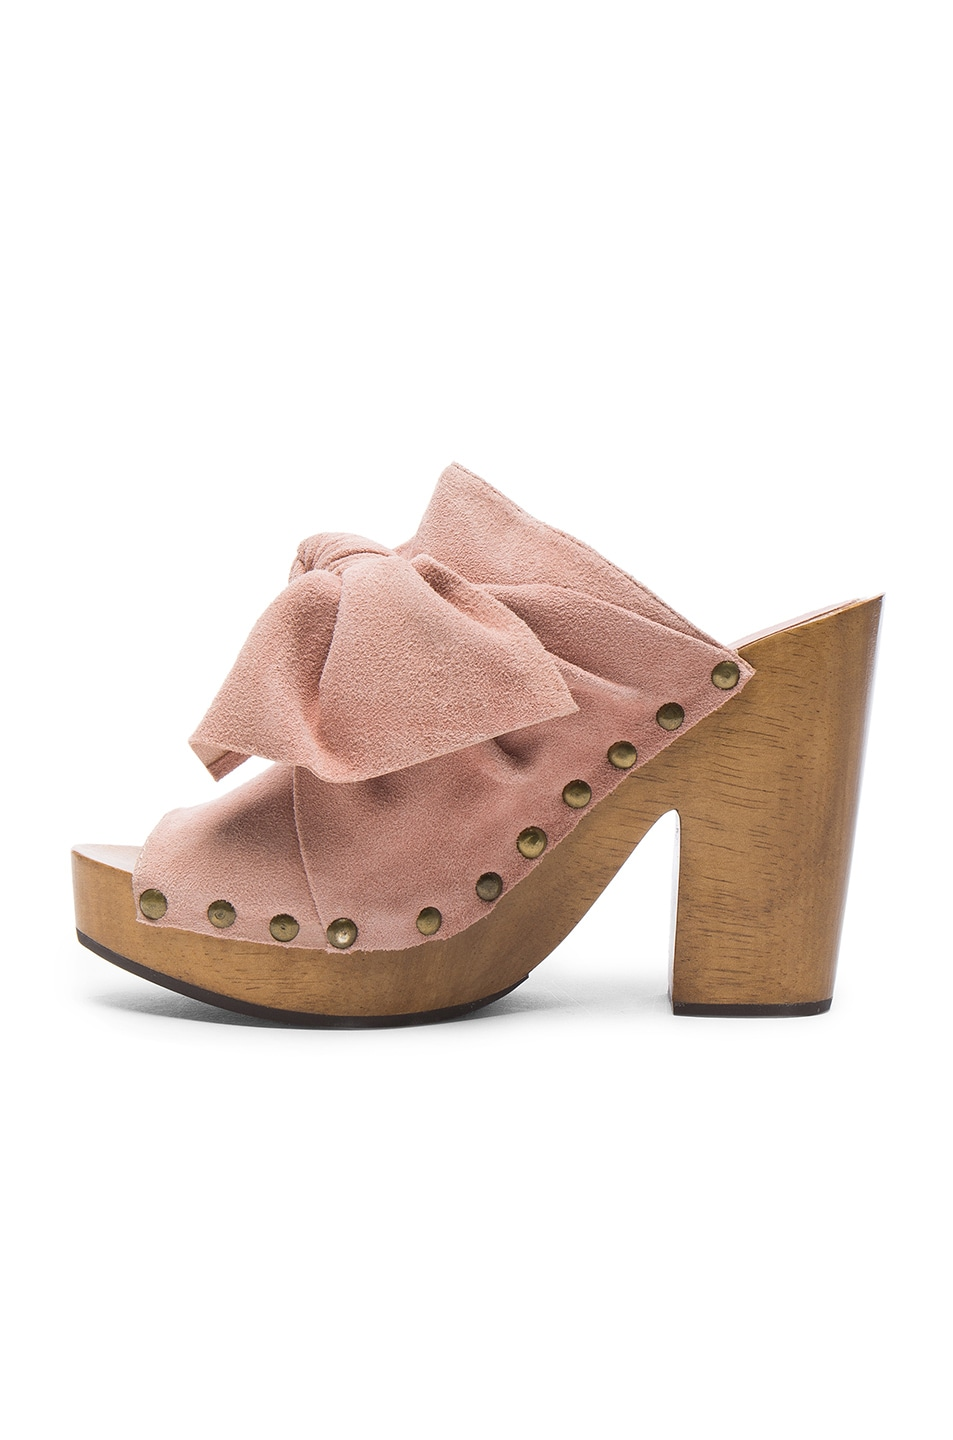 Image 5 of Ulla Johnson Suede Stevie Clogs in Rose Suede